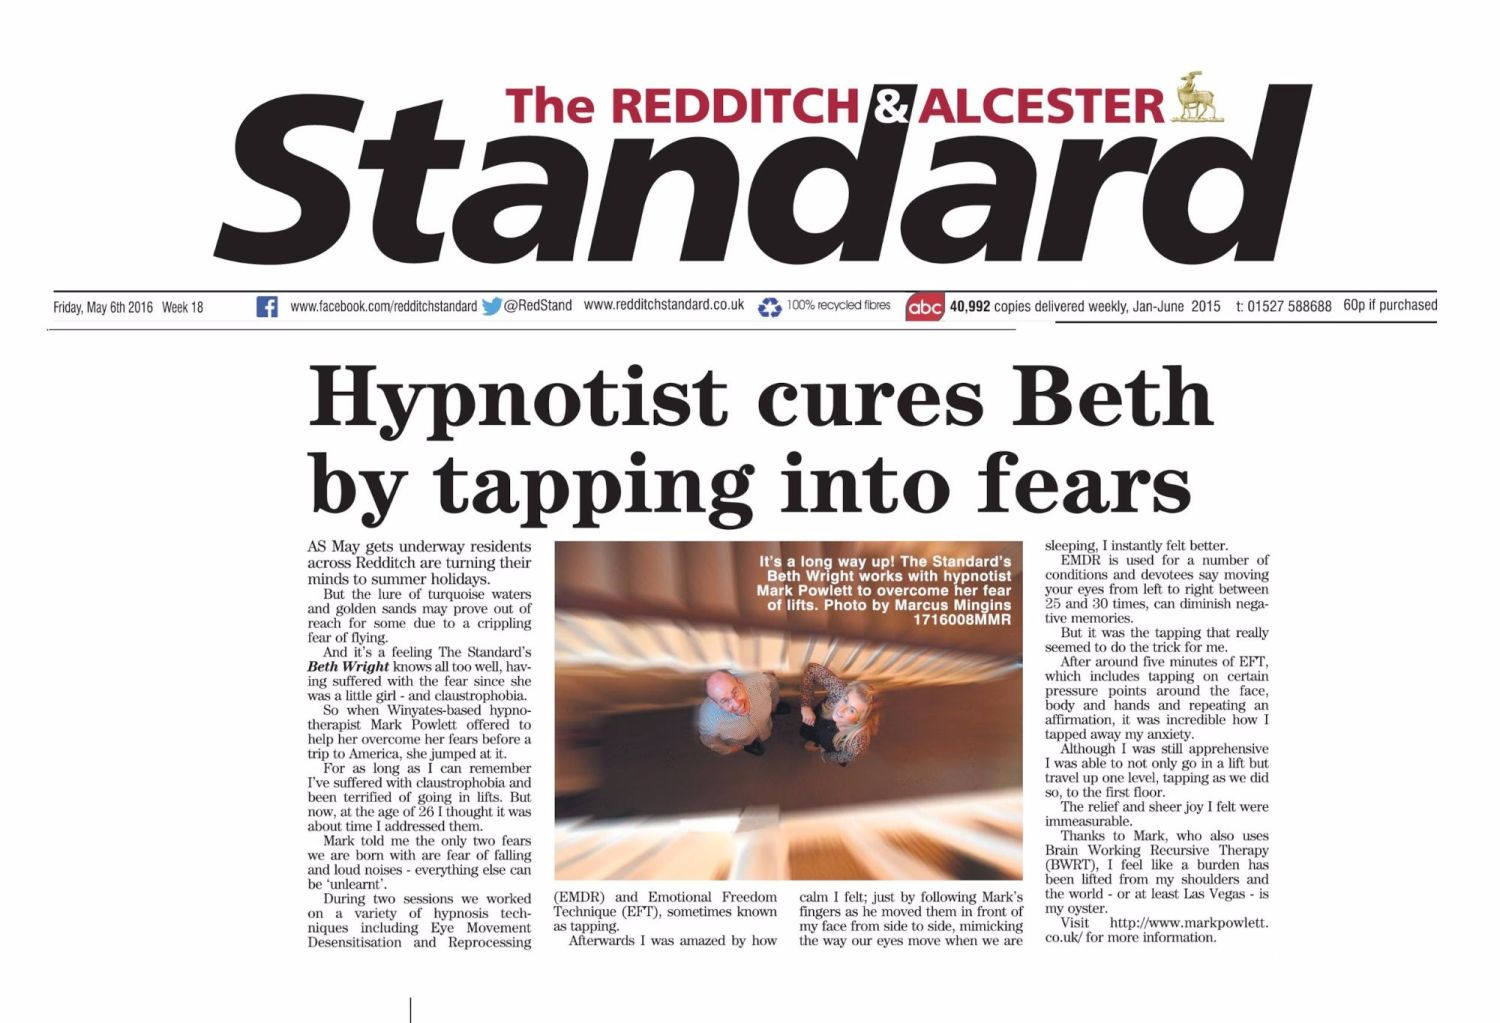 Redditch Standard fear of flying cover